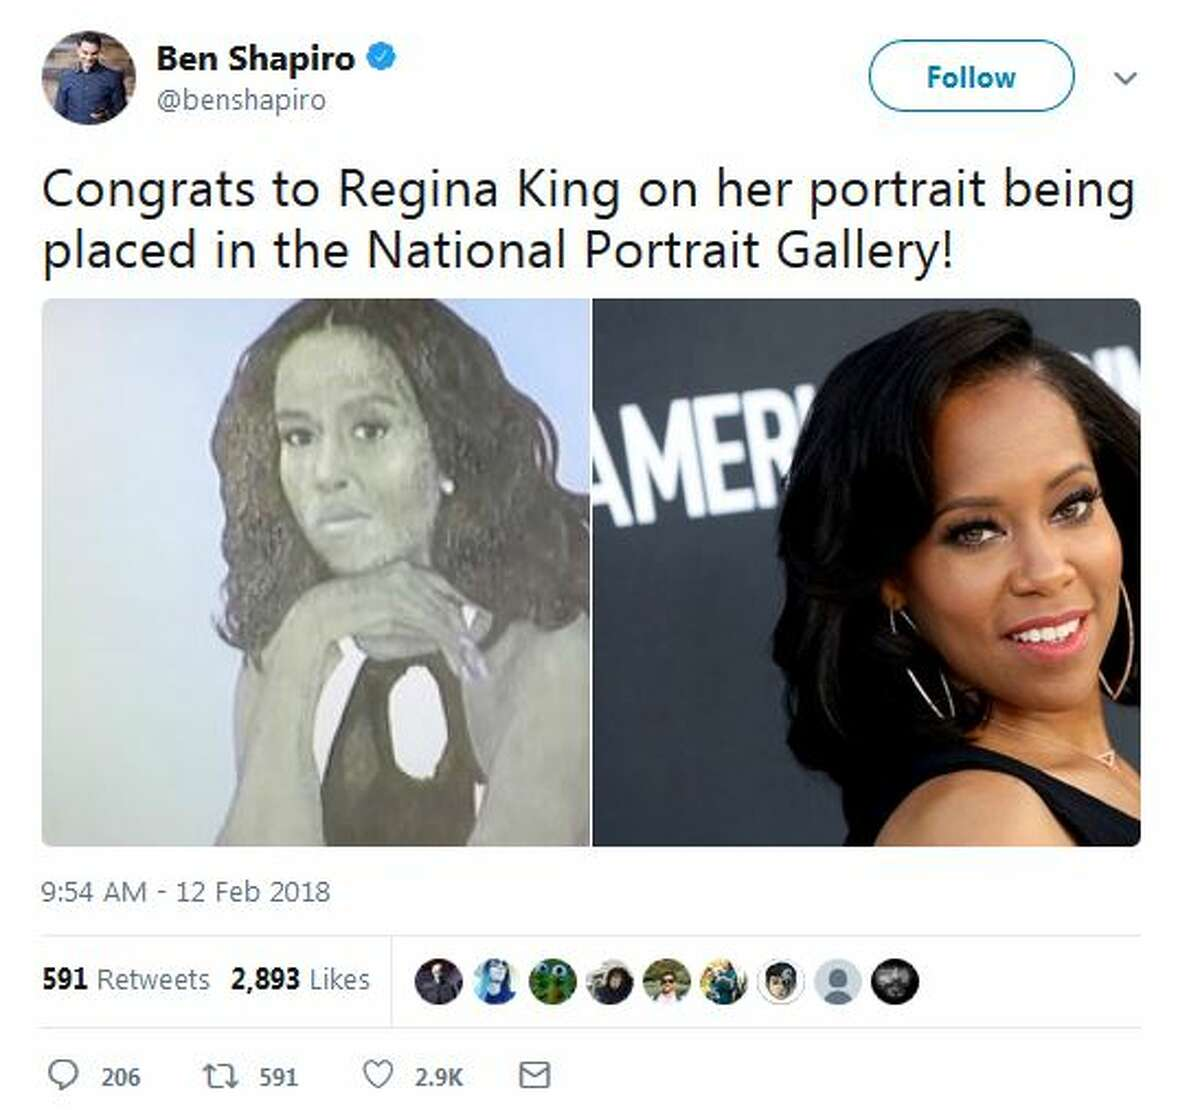 @benshapiro: Congrats to Regina King on her portrait being placed in the National Portrait Gallery!